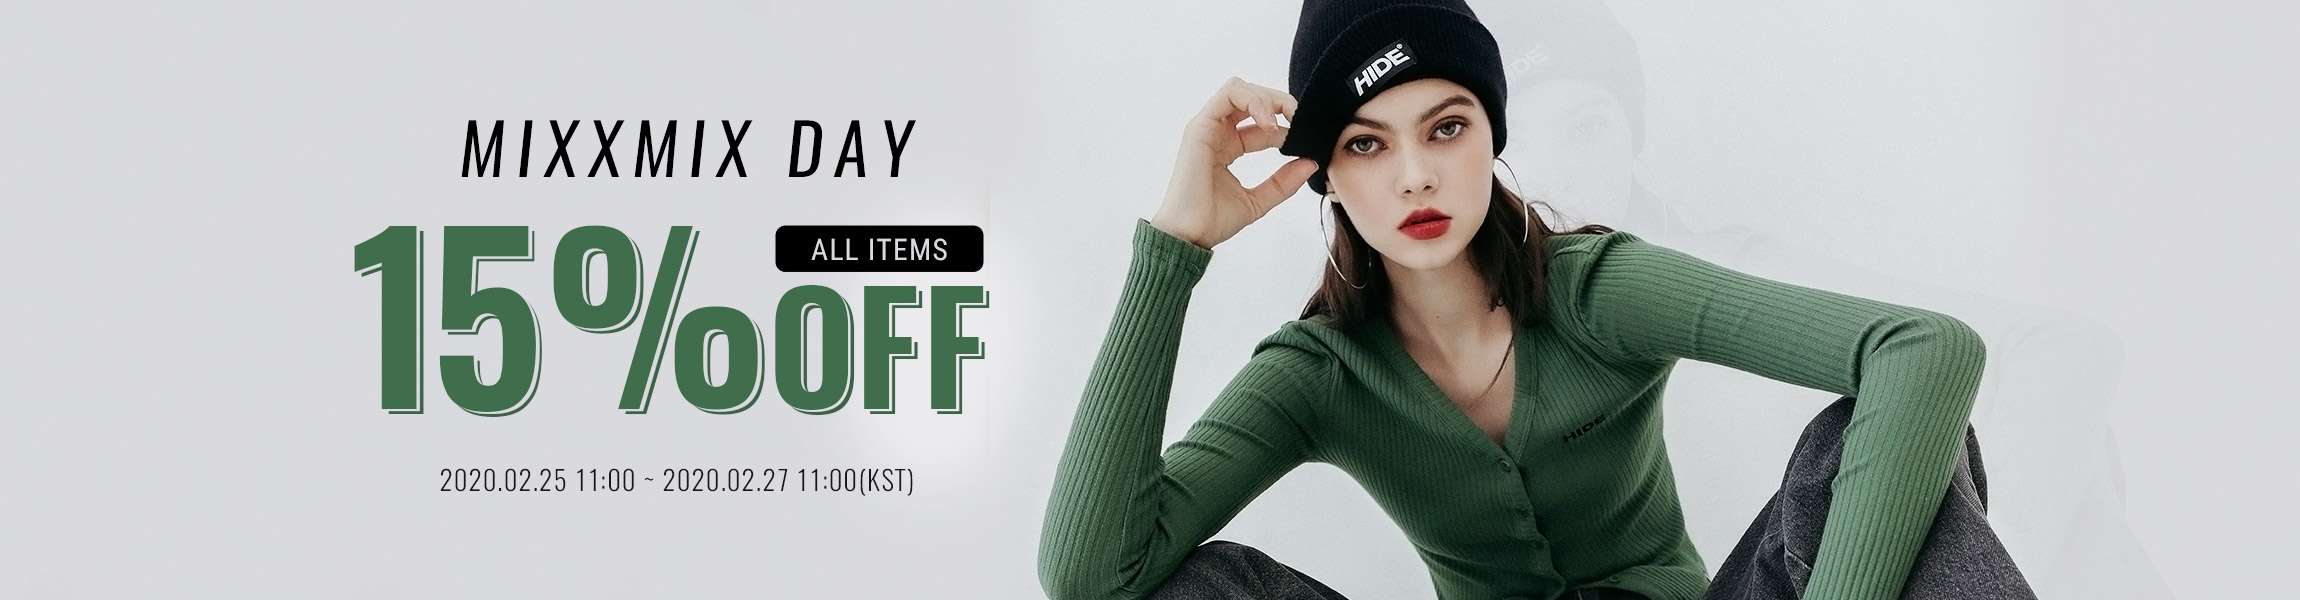 MIXXMIX DAY All items 15%OFF